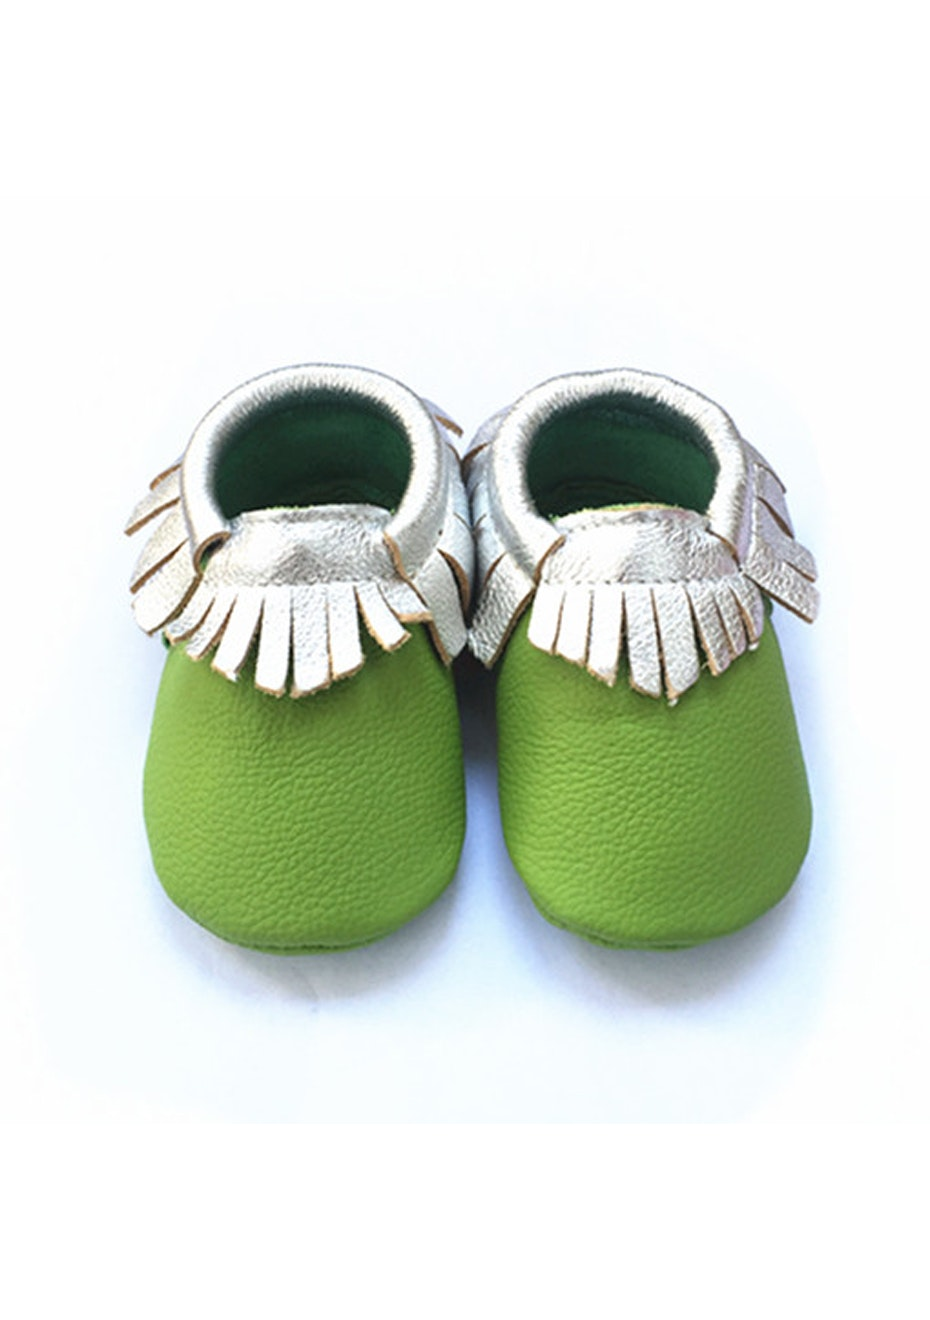 Baby  Leather Shoes - Xmas Green / Silver